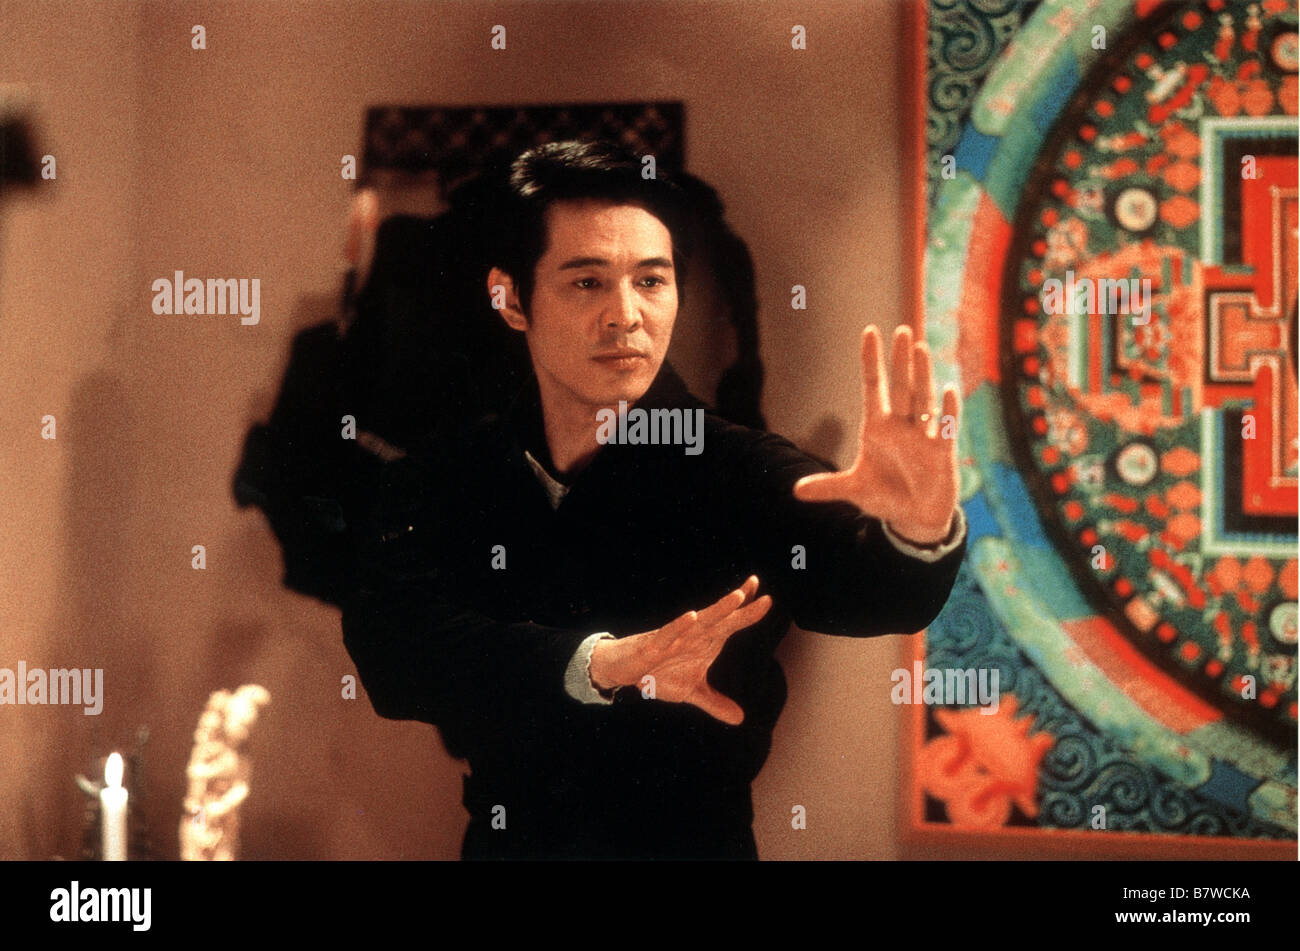 The One The One  Year: 2001 USA Jet Li  Director : James Wong - Stock Image